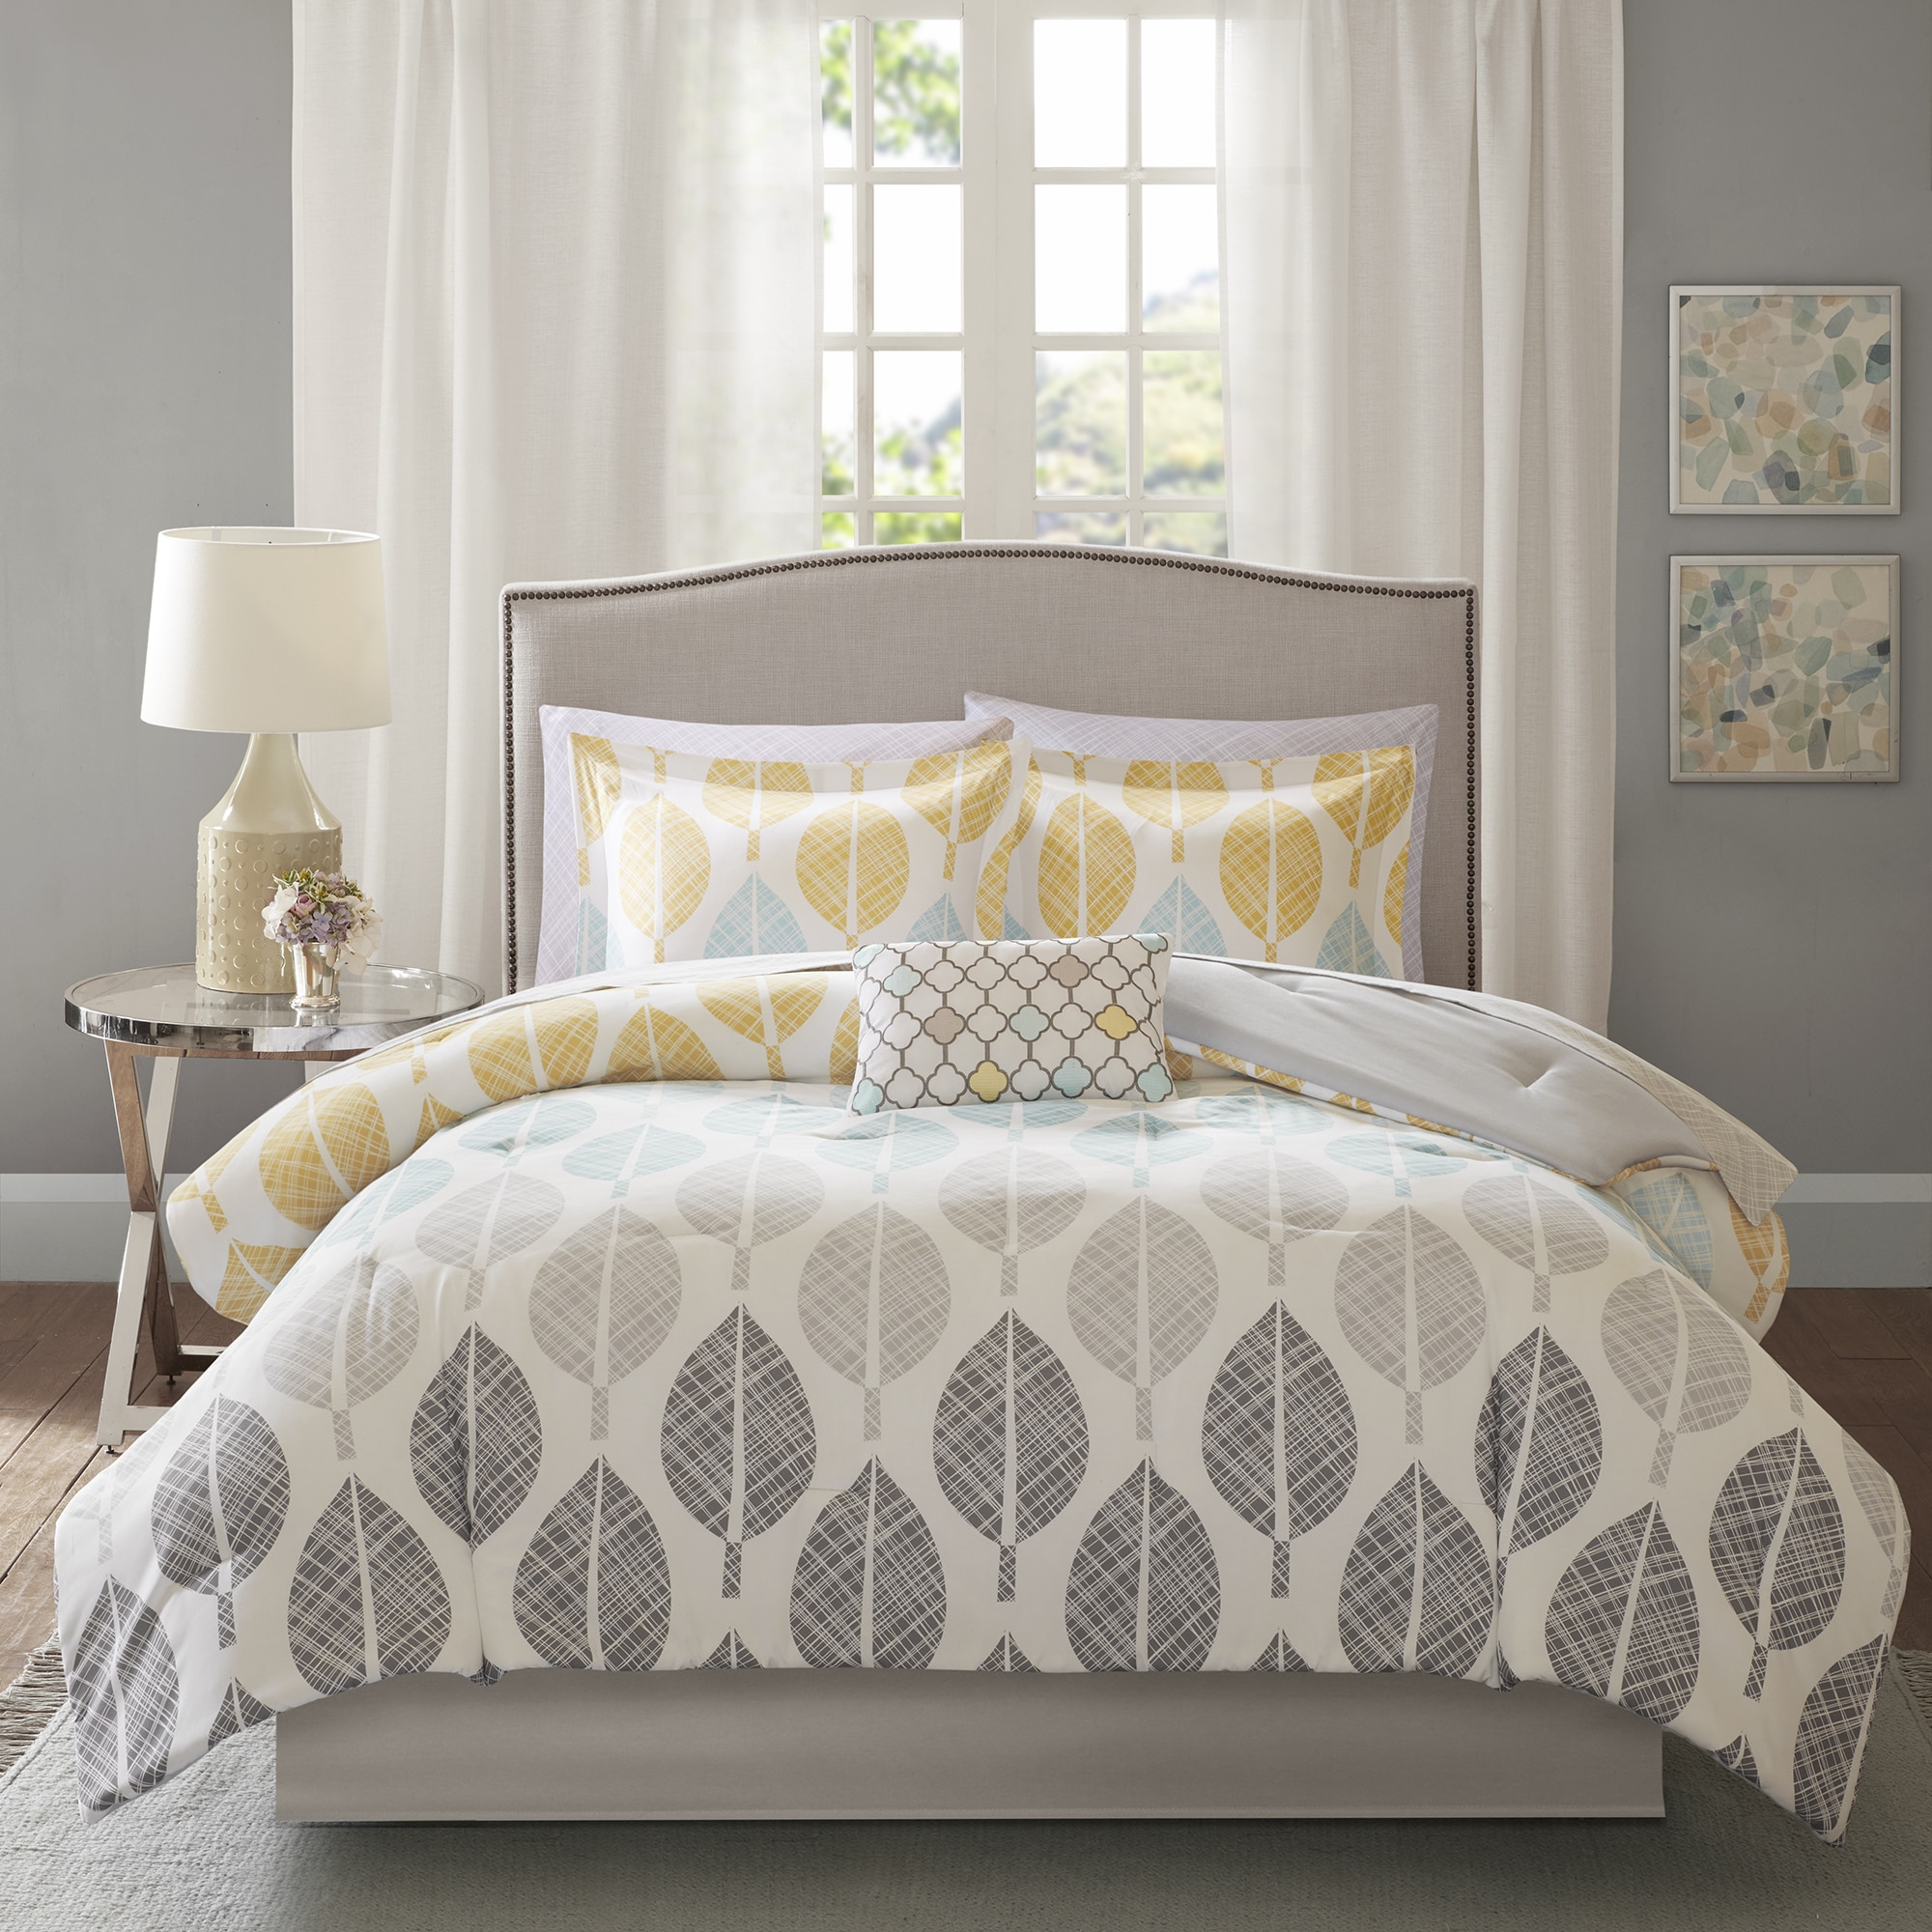 piece manor product bed overstock malta set shipping on bedding avondale comforter bath free orders com